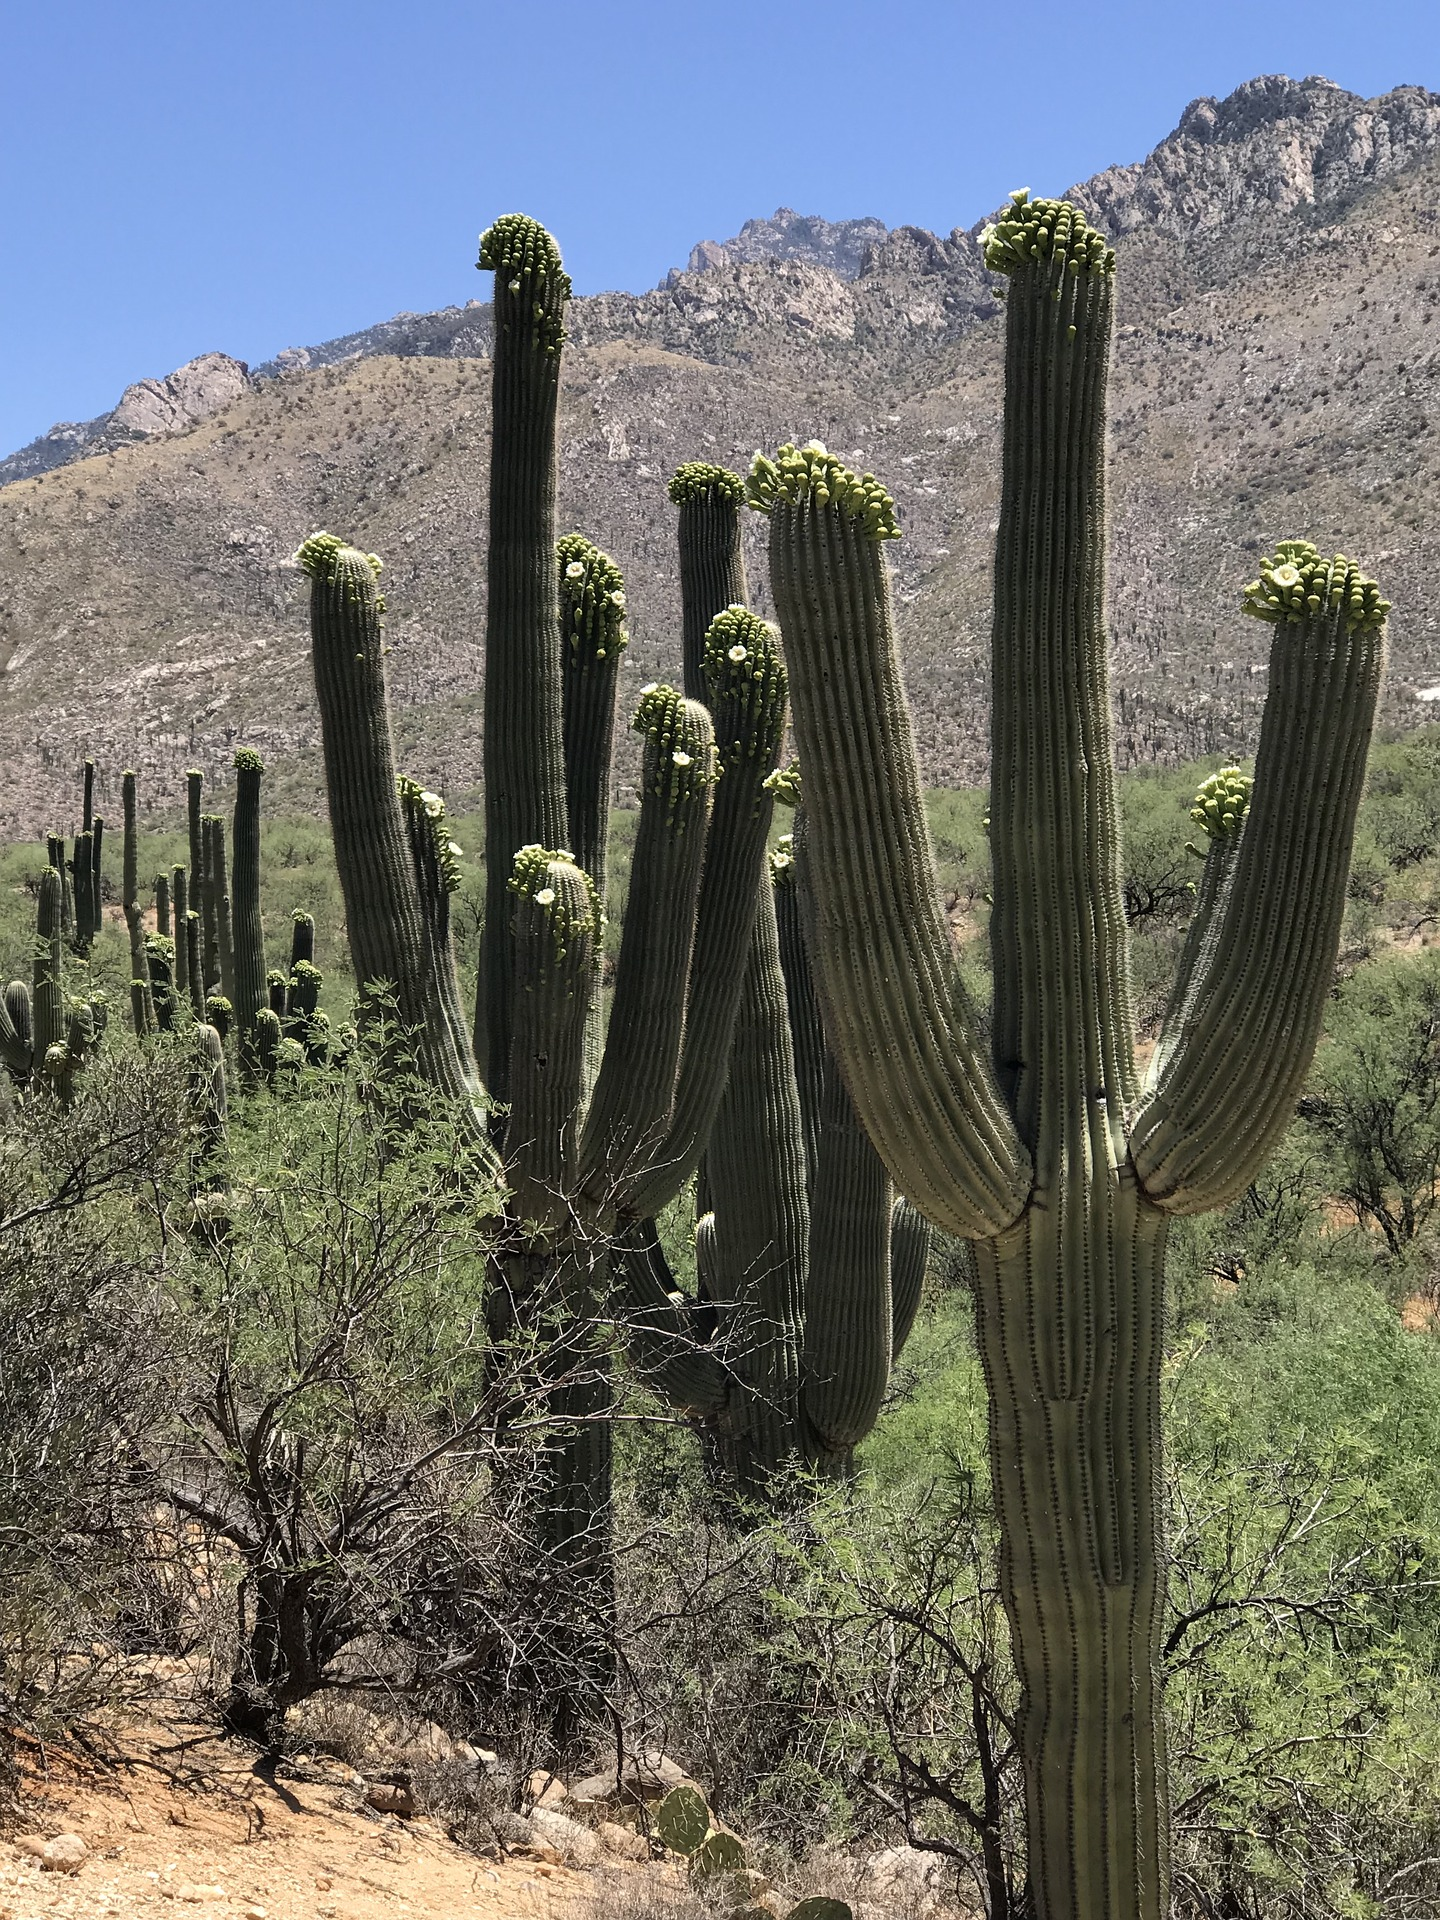 tucson-mountain-park.jpg